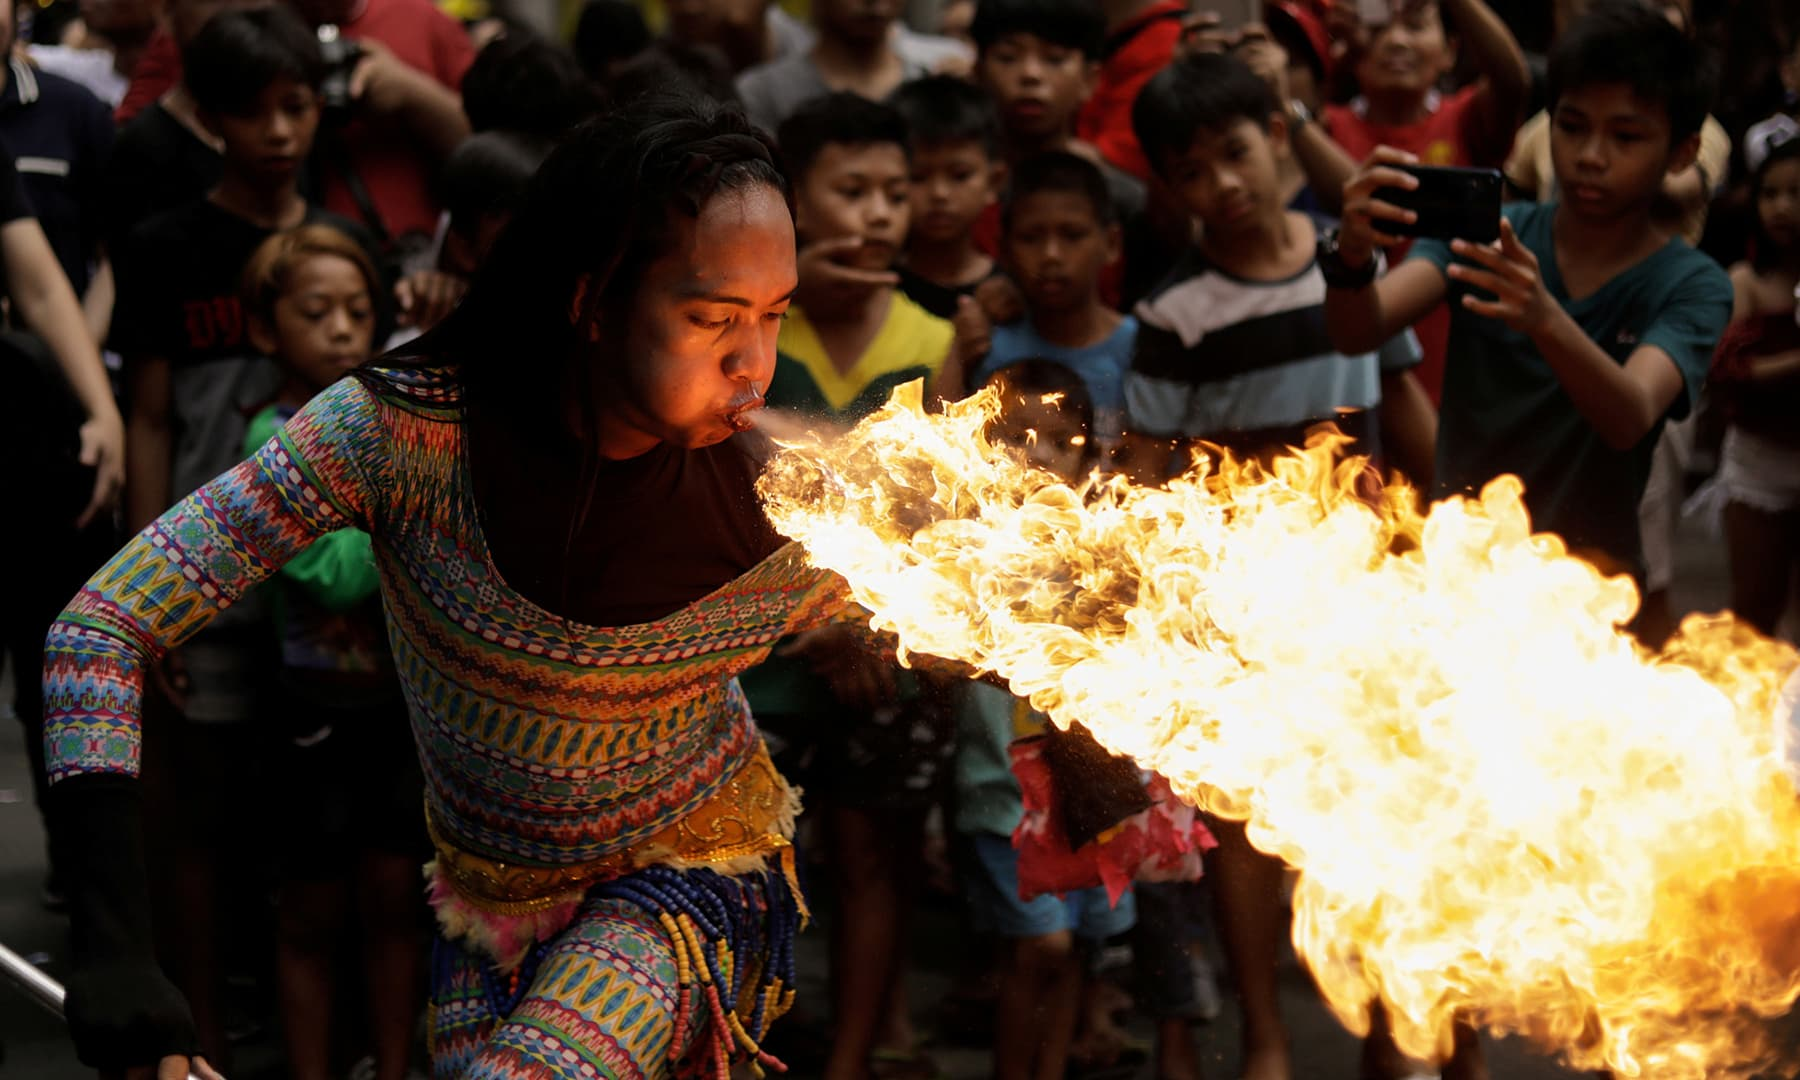 A performer blows fire during Chinese Lunar New Year celebrations in Chinatown, Binondo, Manila, Philippines on January 25, 2020. — Reuters